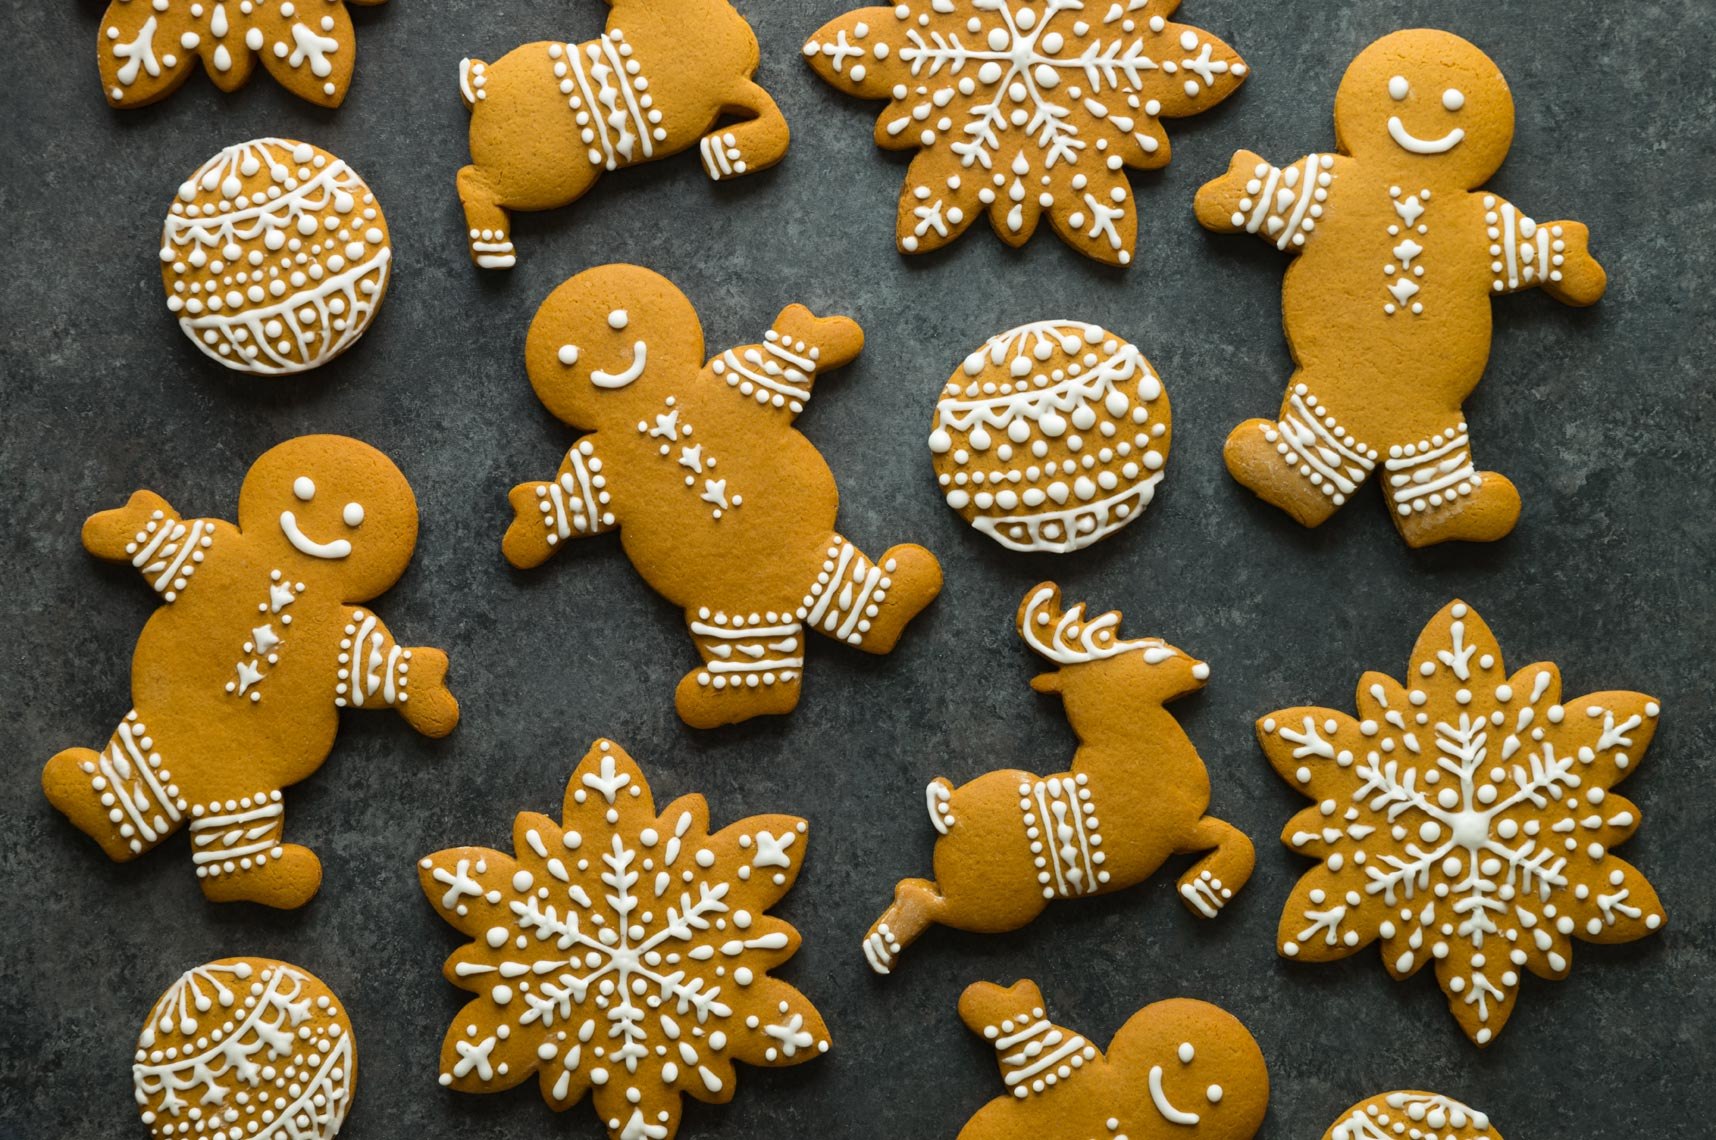 gingerbread_cookies_1216_0082-2